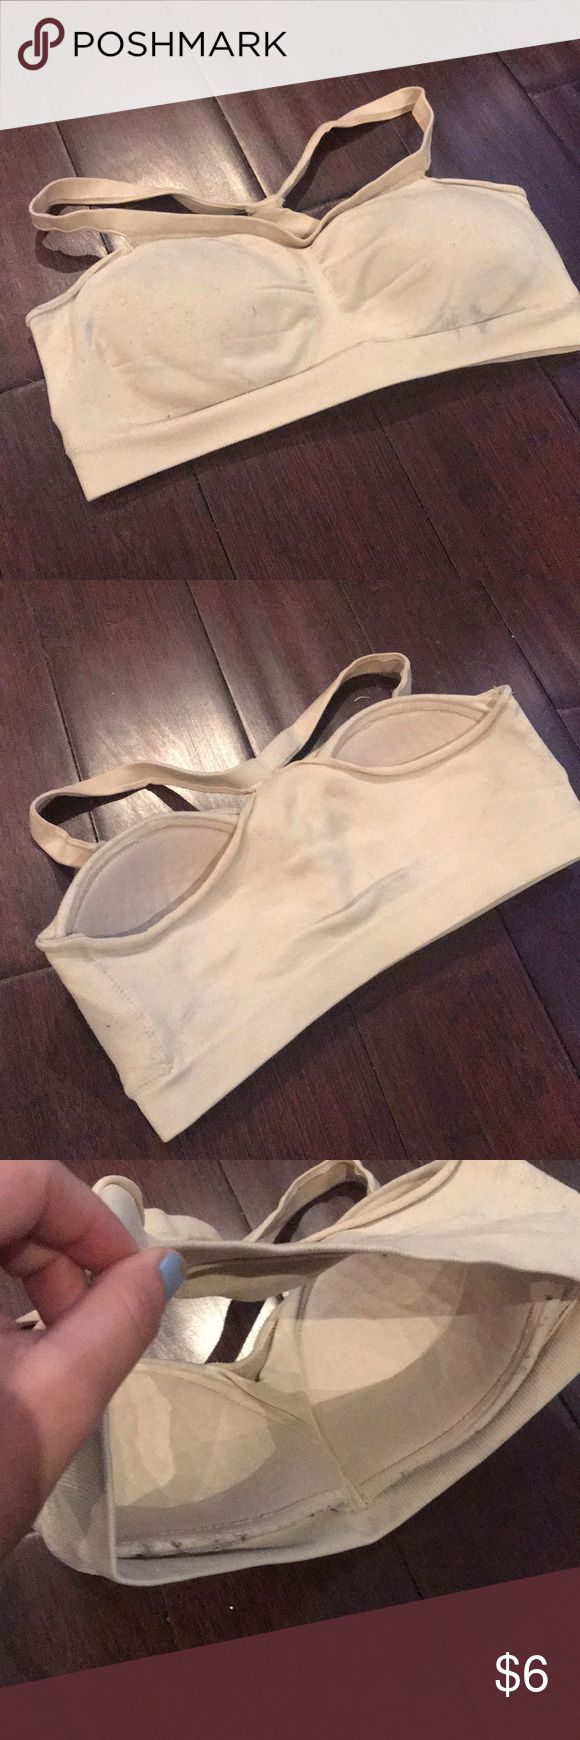 Barely There Nude Colored Cup Lined Sports Bra Barely There brand sports bra. Nude colored, cup lined, NO underwire support. Size Juniors Medium. Does not have an actual bra sizing but this would be very similar fit to a 34B size Barely There Intimates & Sleepwear Bras